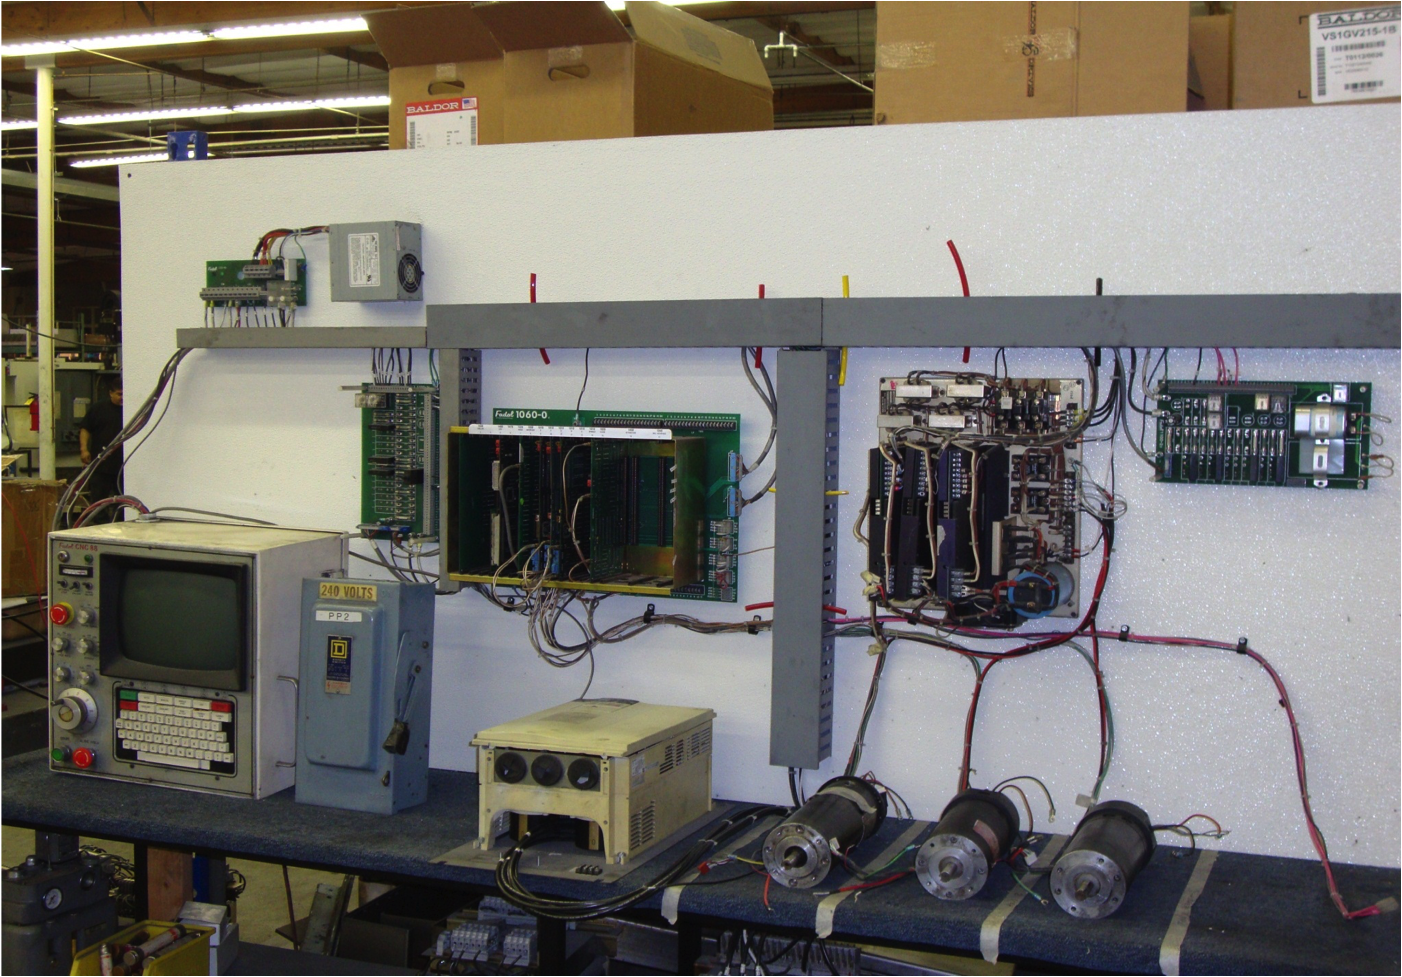 A 20 Hour burn in or test period is completed on AMPS, Motors, Axis Cards, and Inverters before being installed on a machine